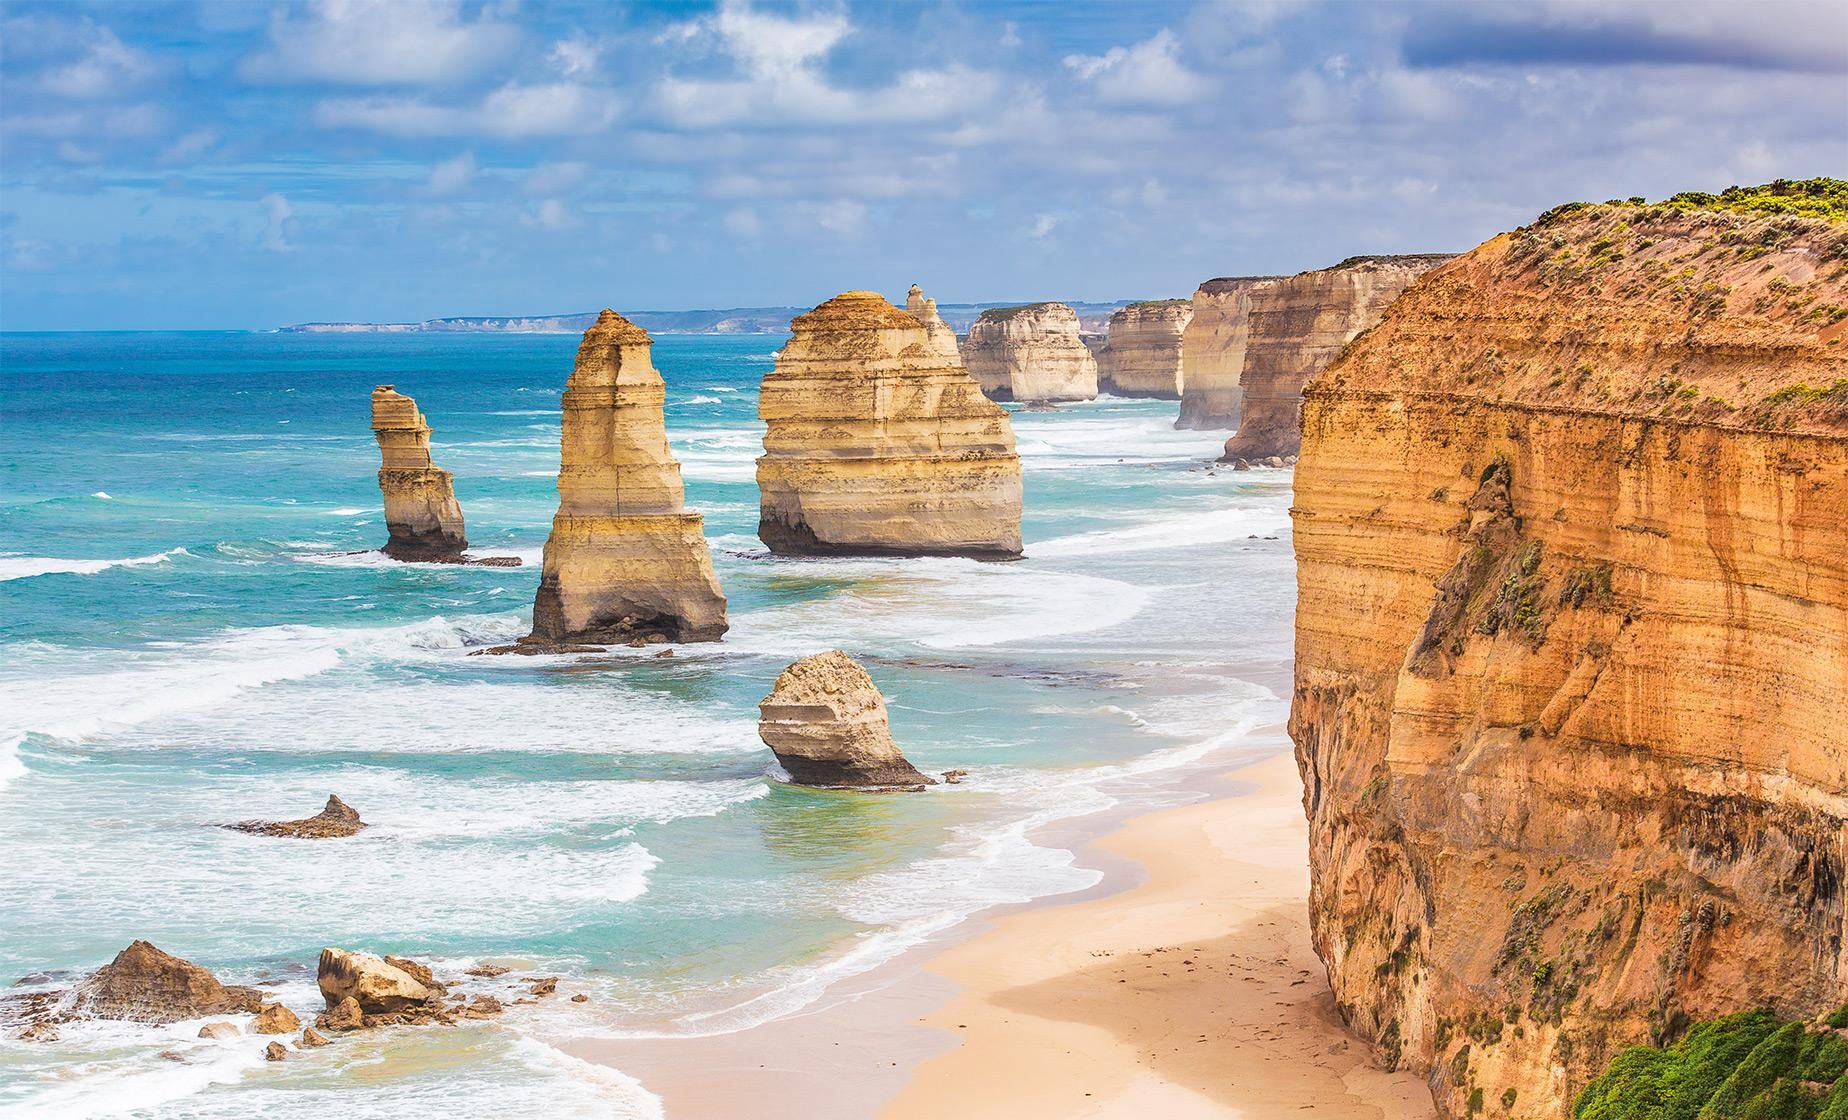 Exclusive Great Ocean Road Eco Tour from Melbourne